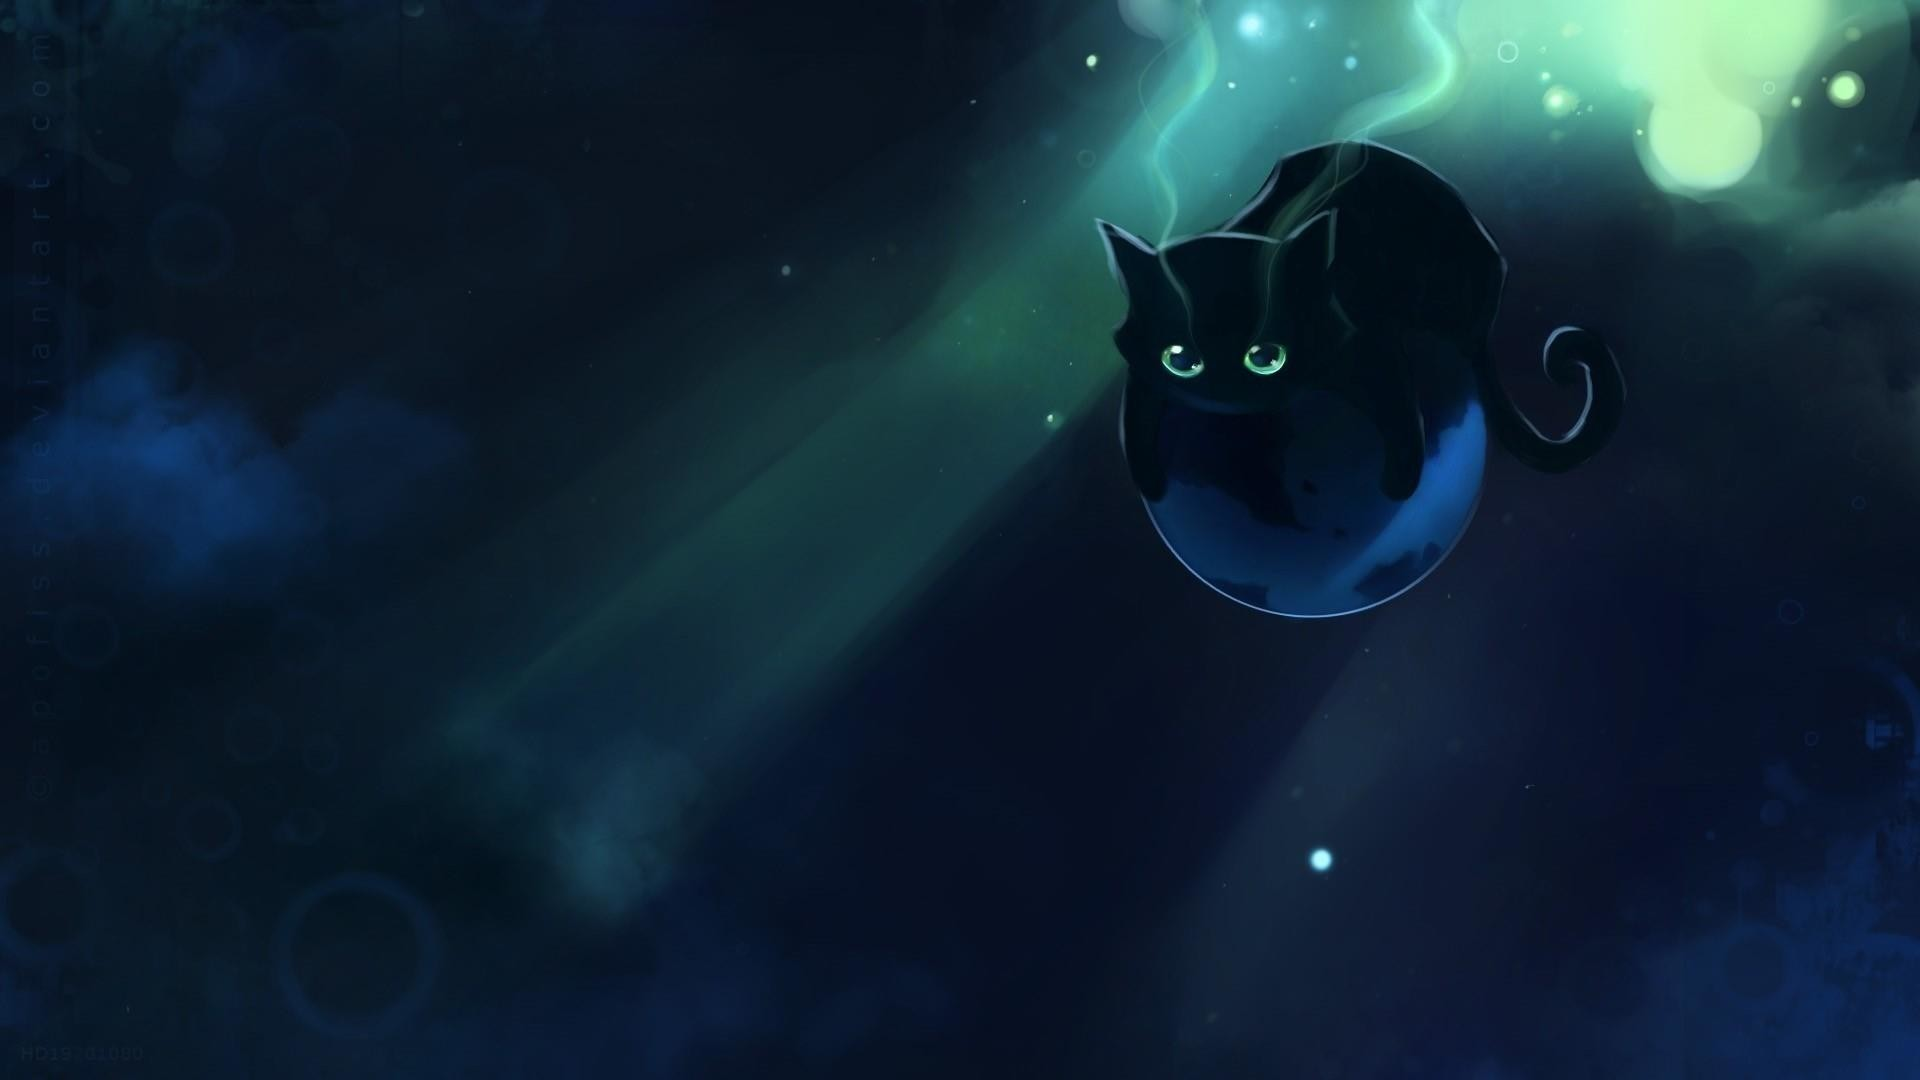 Res: 1920x1080, Black Space Cat Wallpaper | Wallpaper Studio 10 | Tens of thousands HD and  UltraHD wallpapers for Android, Windows and Xbox